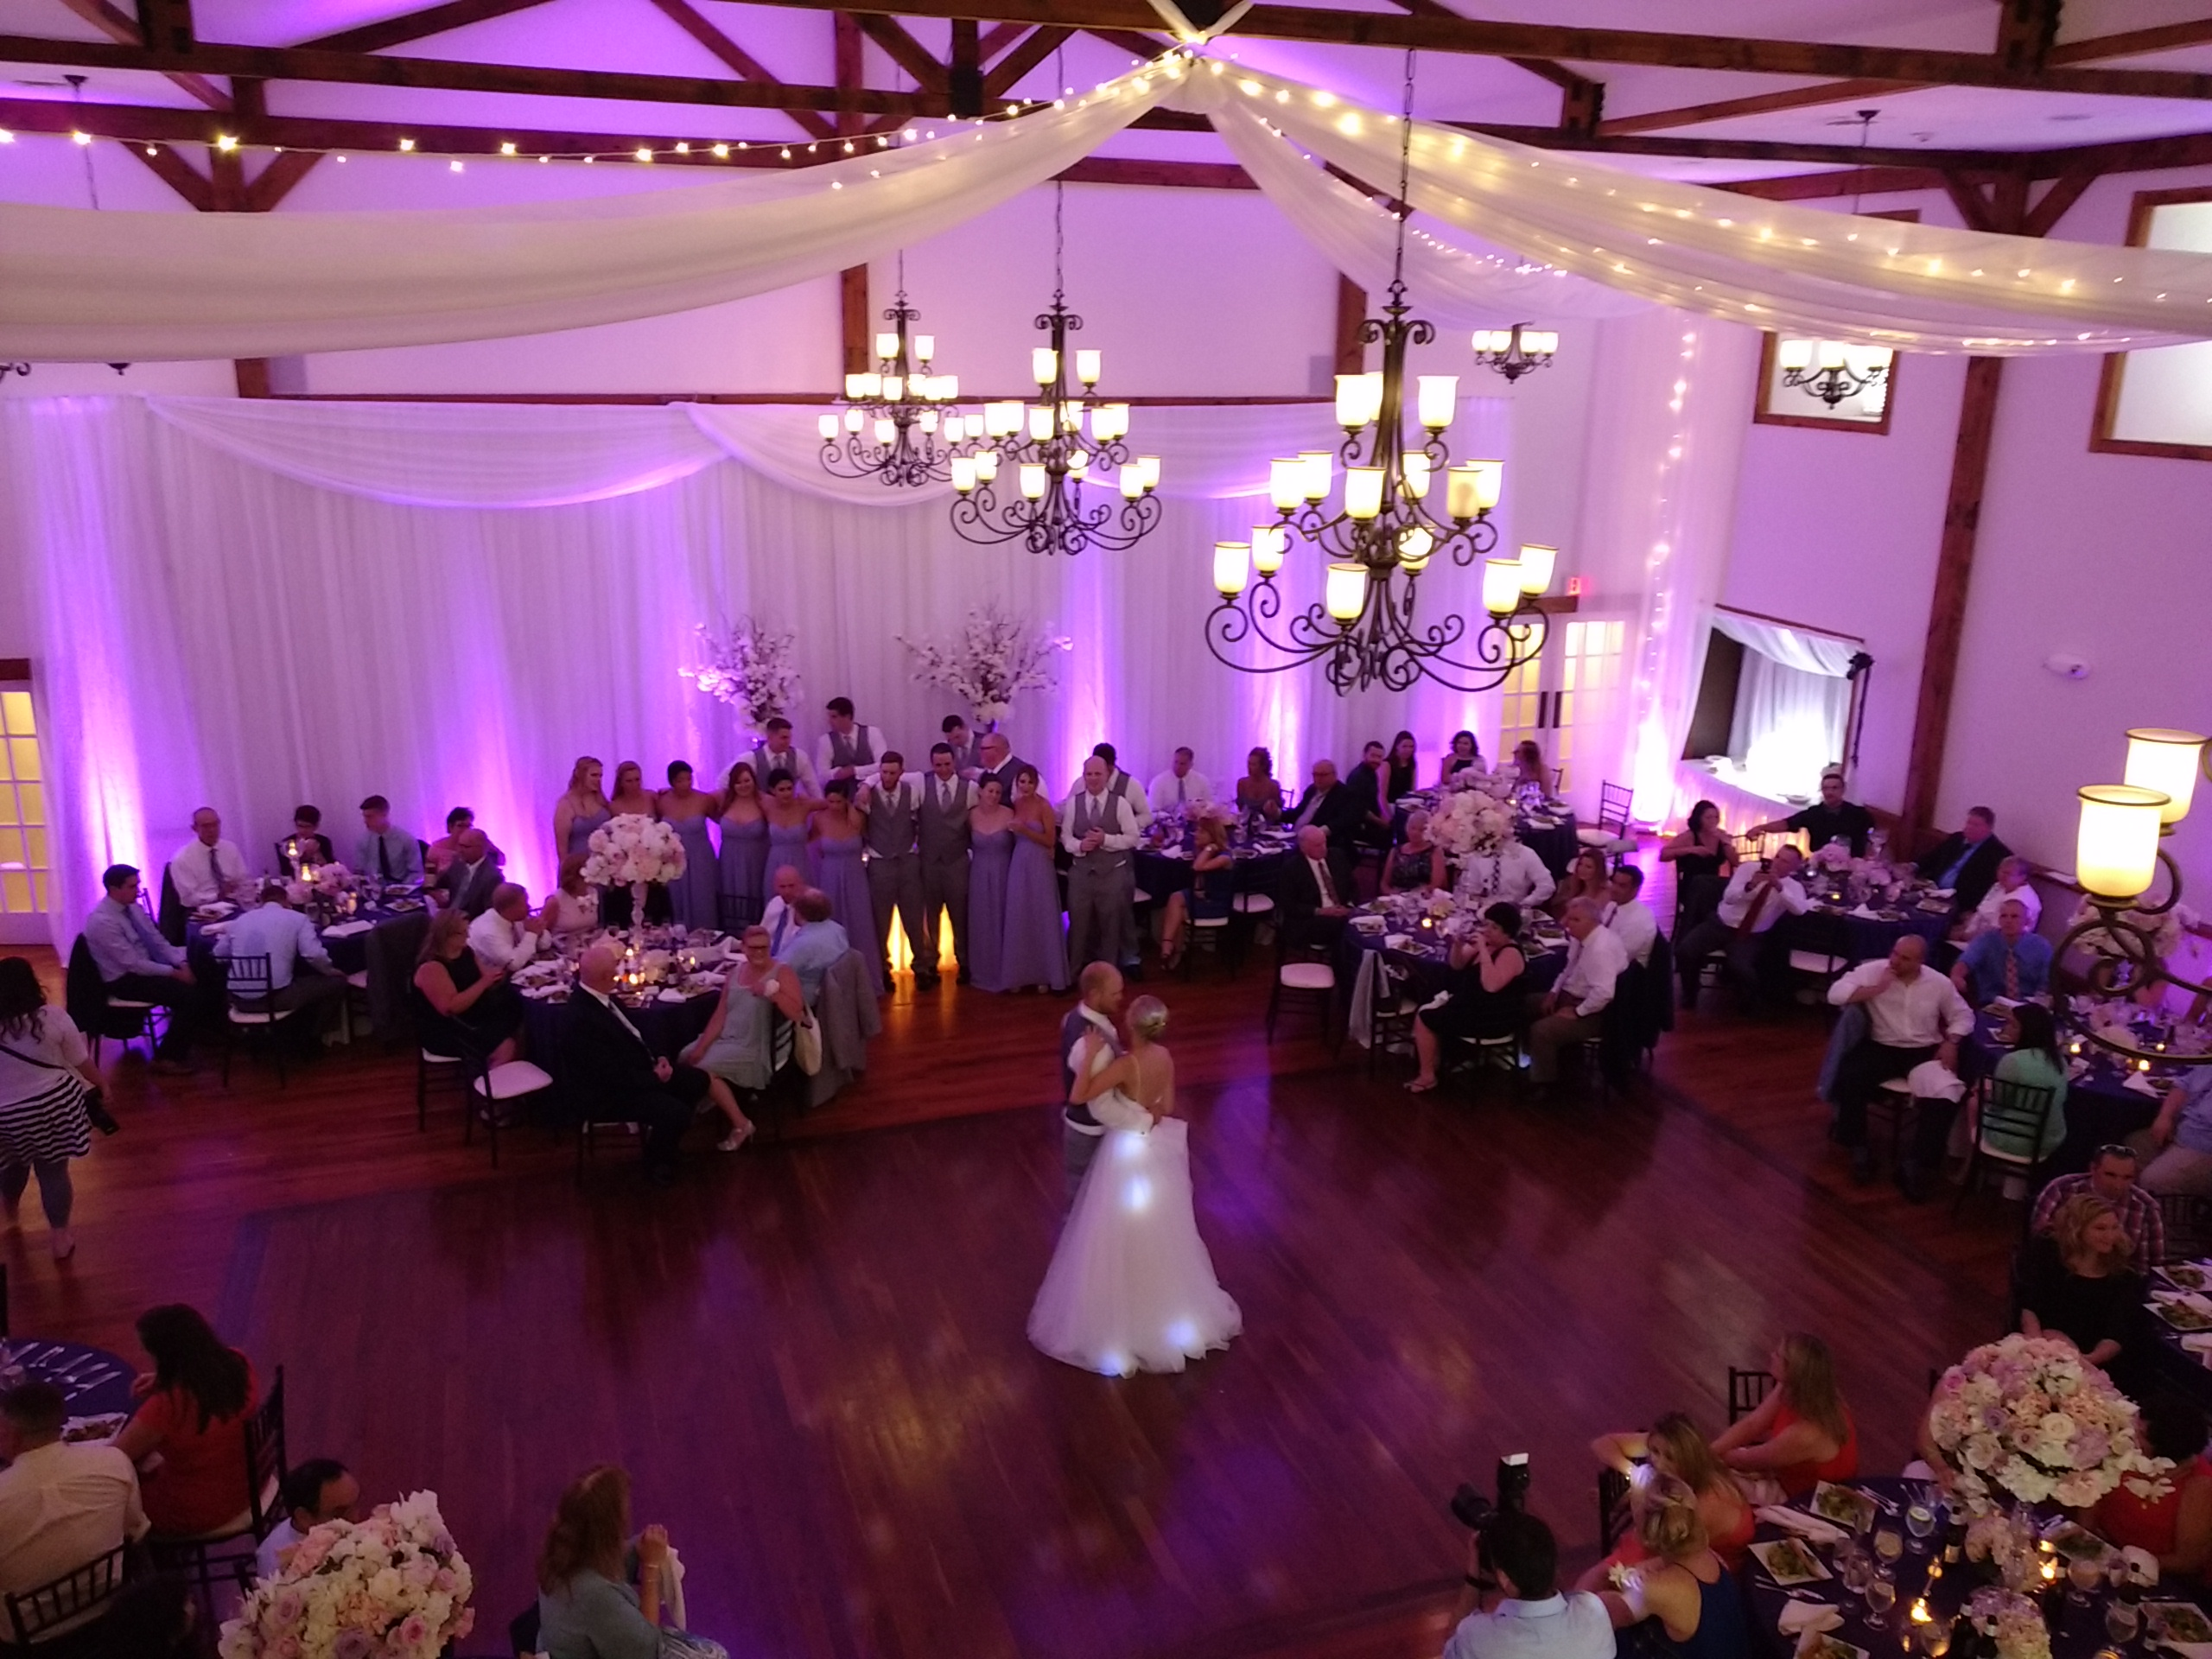 Wedding Dj Weddings Dj Wedding Reception Dj York Dj Harrisburg Dj